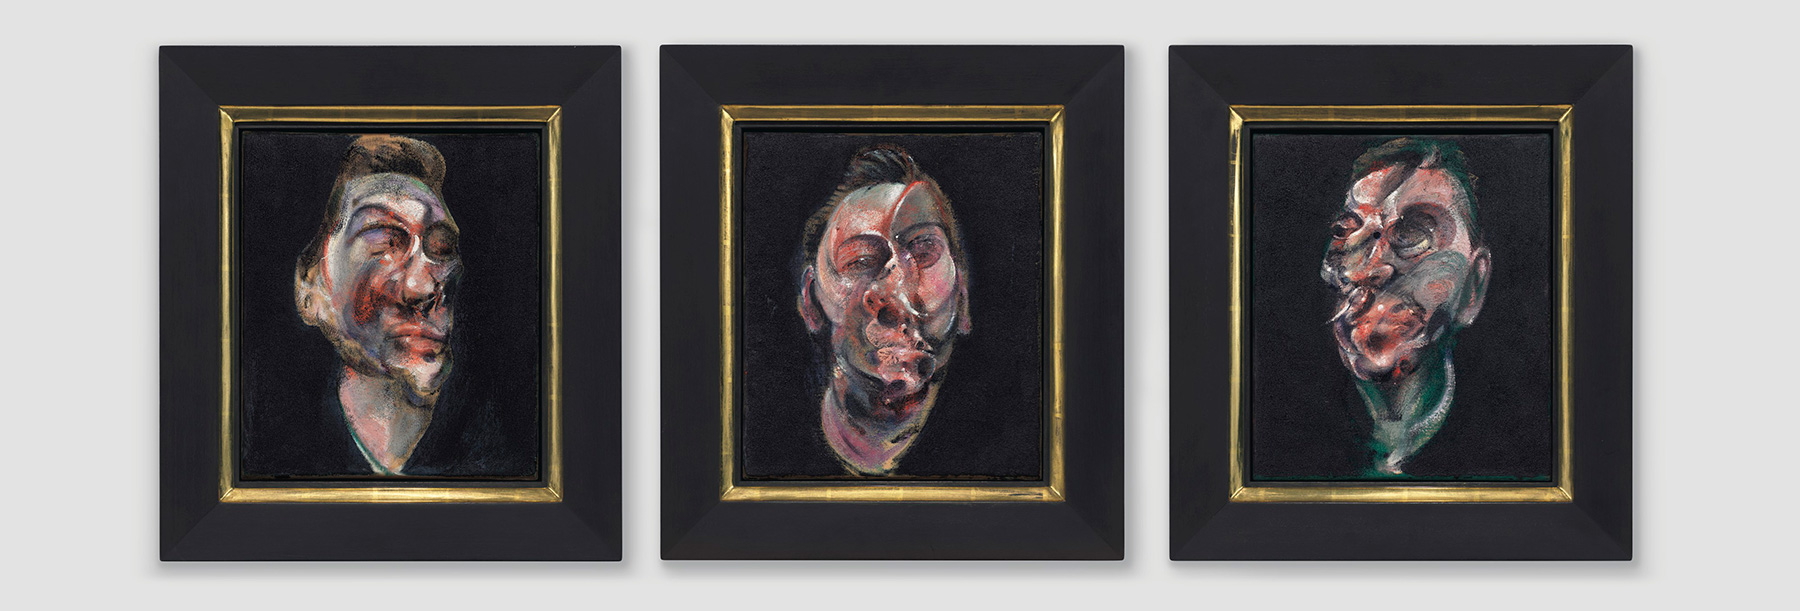 Christie's See Giant Gains, Thanks to Cy Twombly